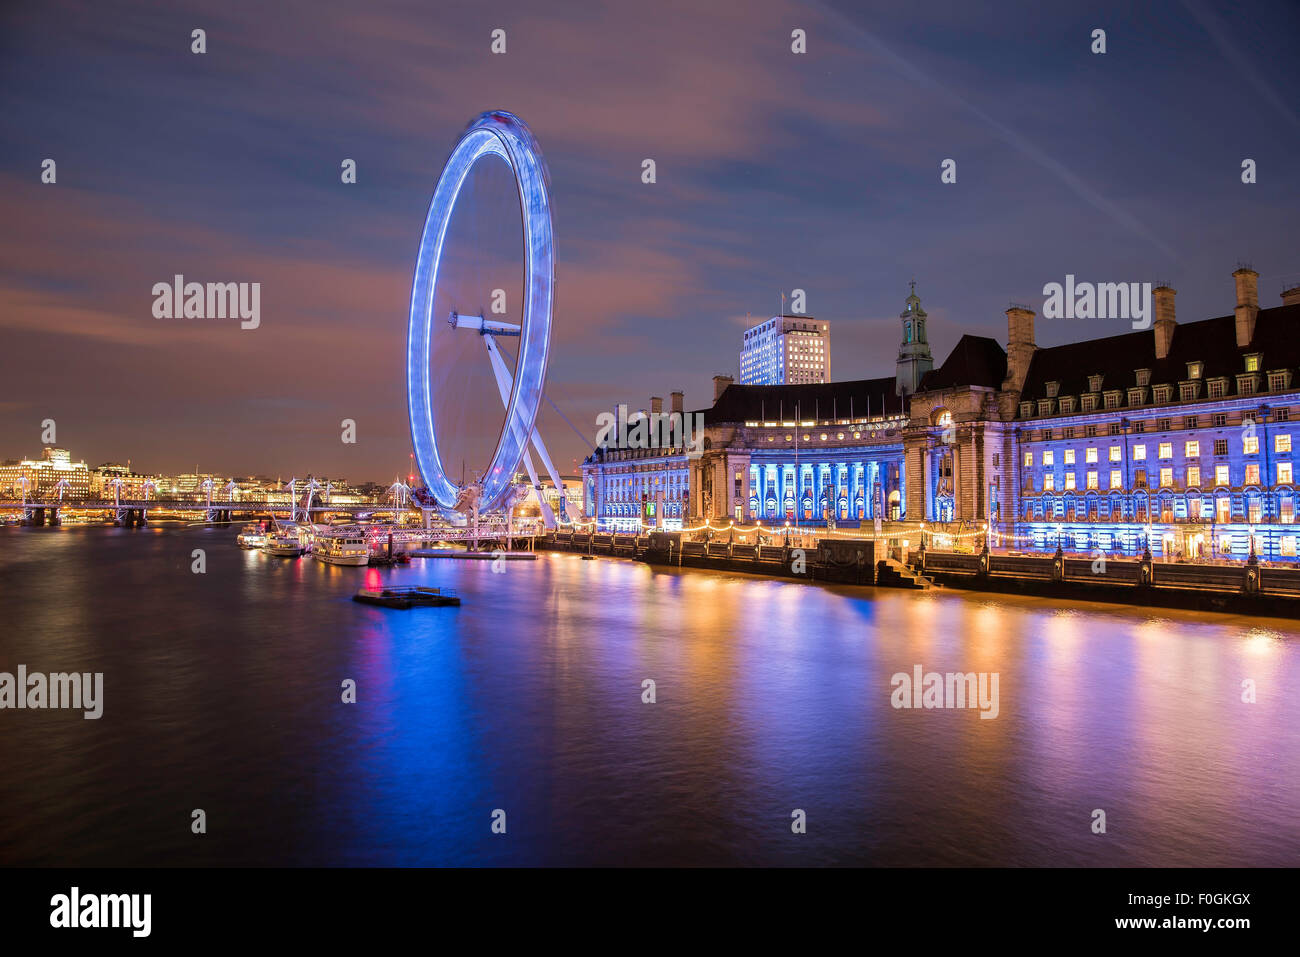 London Eye attraction at night Stock Photo